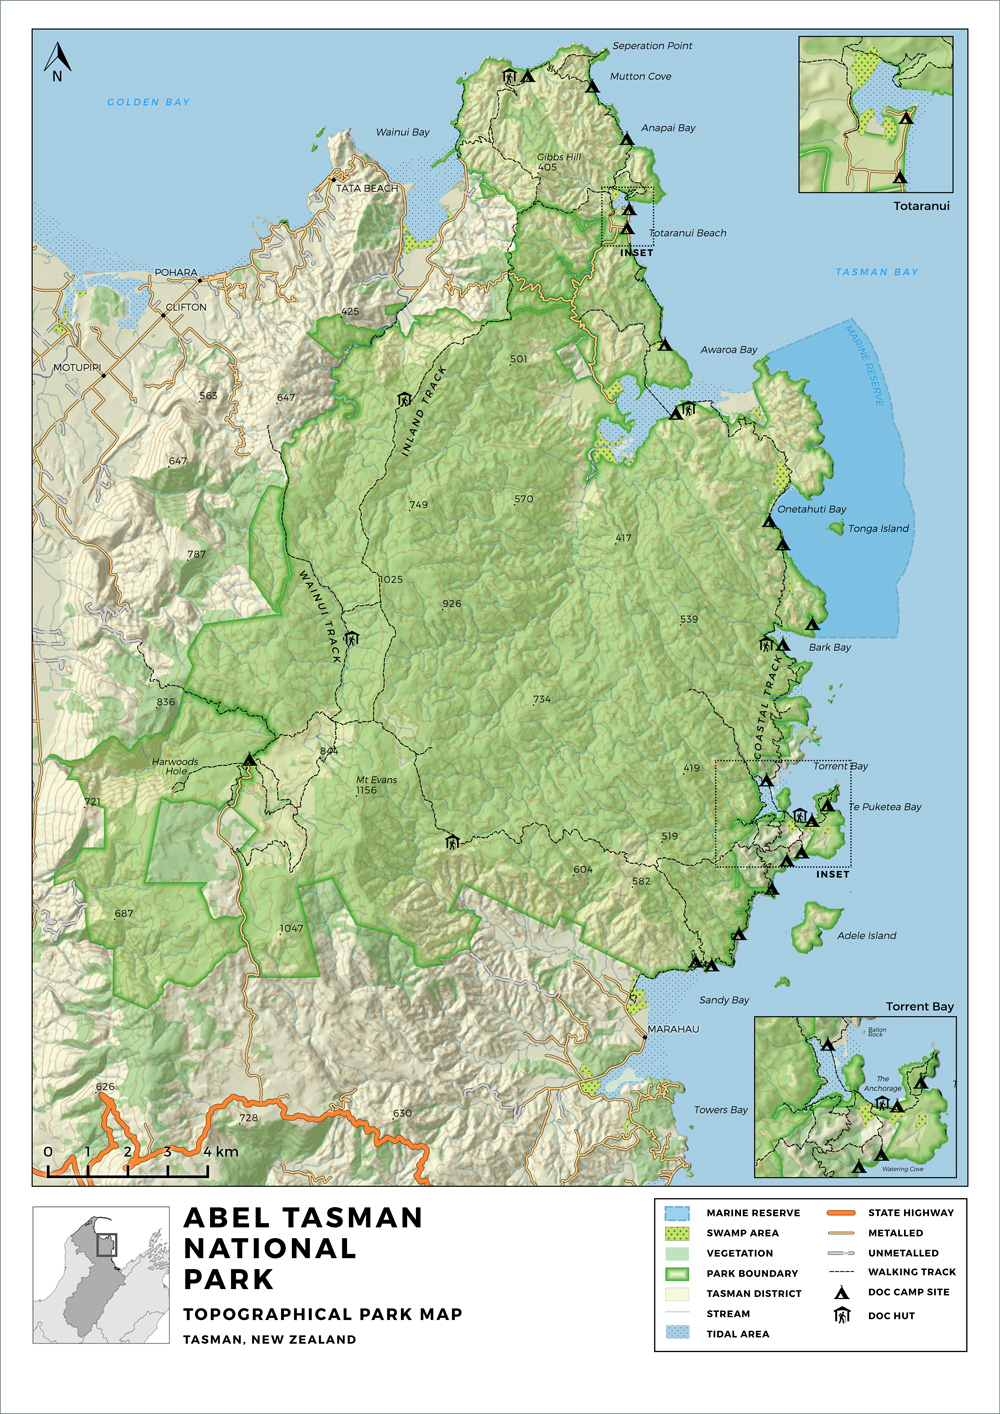 Abel-Tasman-Map-Topographical-Park-Map